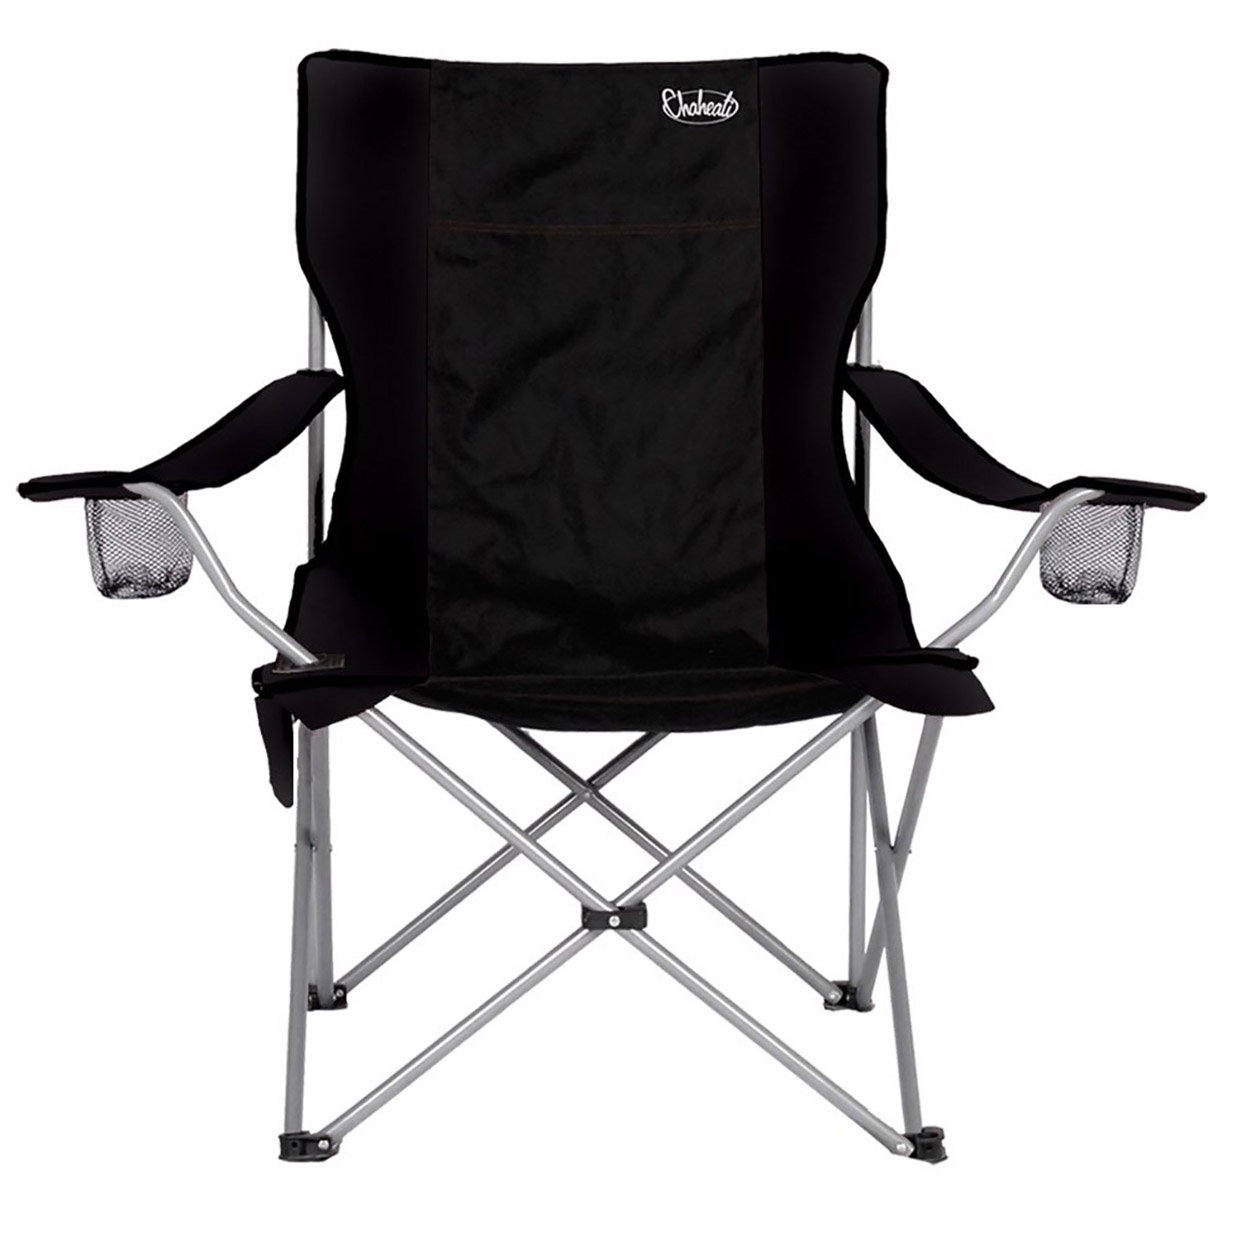 This Folding Chair Has a Built-In Seat Warmer